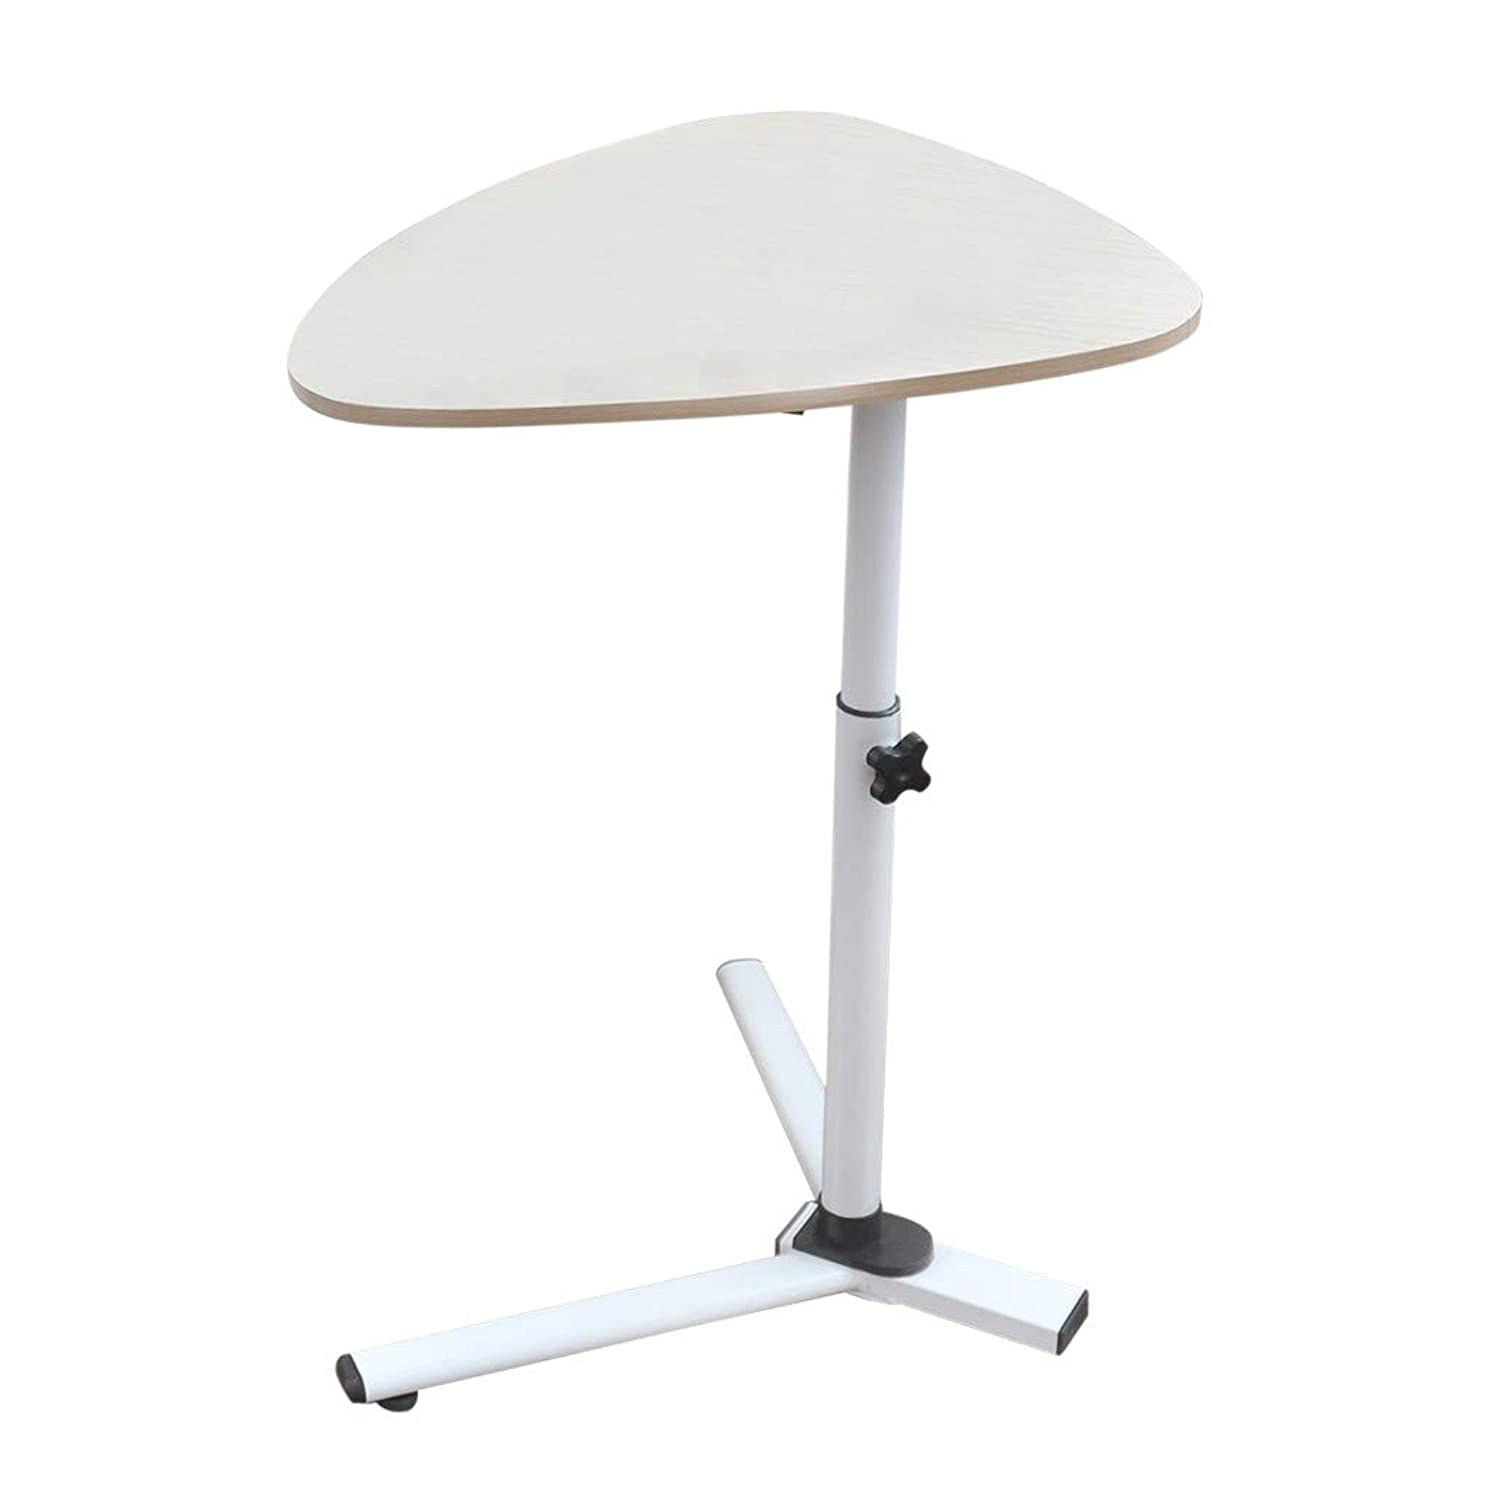 Round Side Table Sofa End Table Mobile Laptop Computer Desk Adjustable Bedside Table Overbed Nightstand Modern Furniture Decor Snack Tray Tables for Living Room Balcony Home Office Bedroom (White)